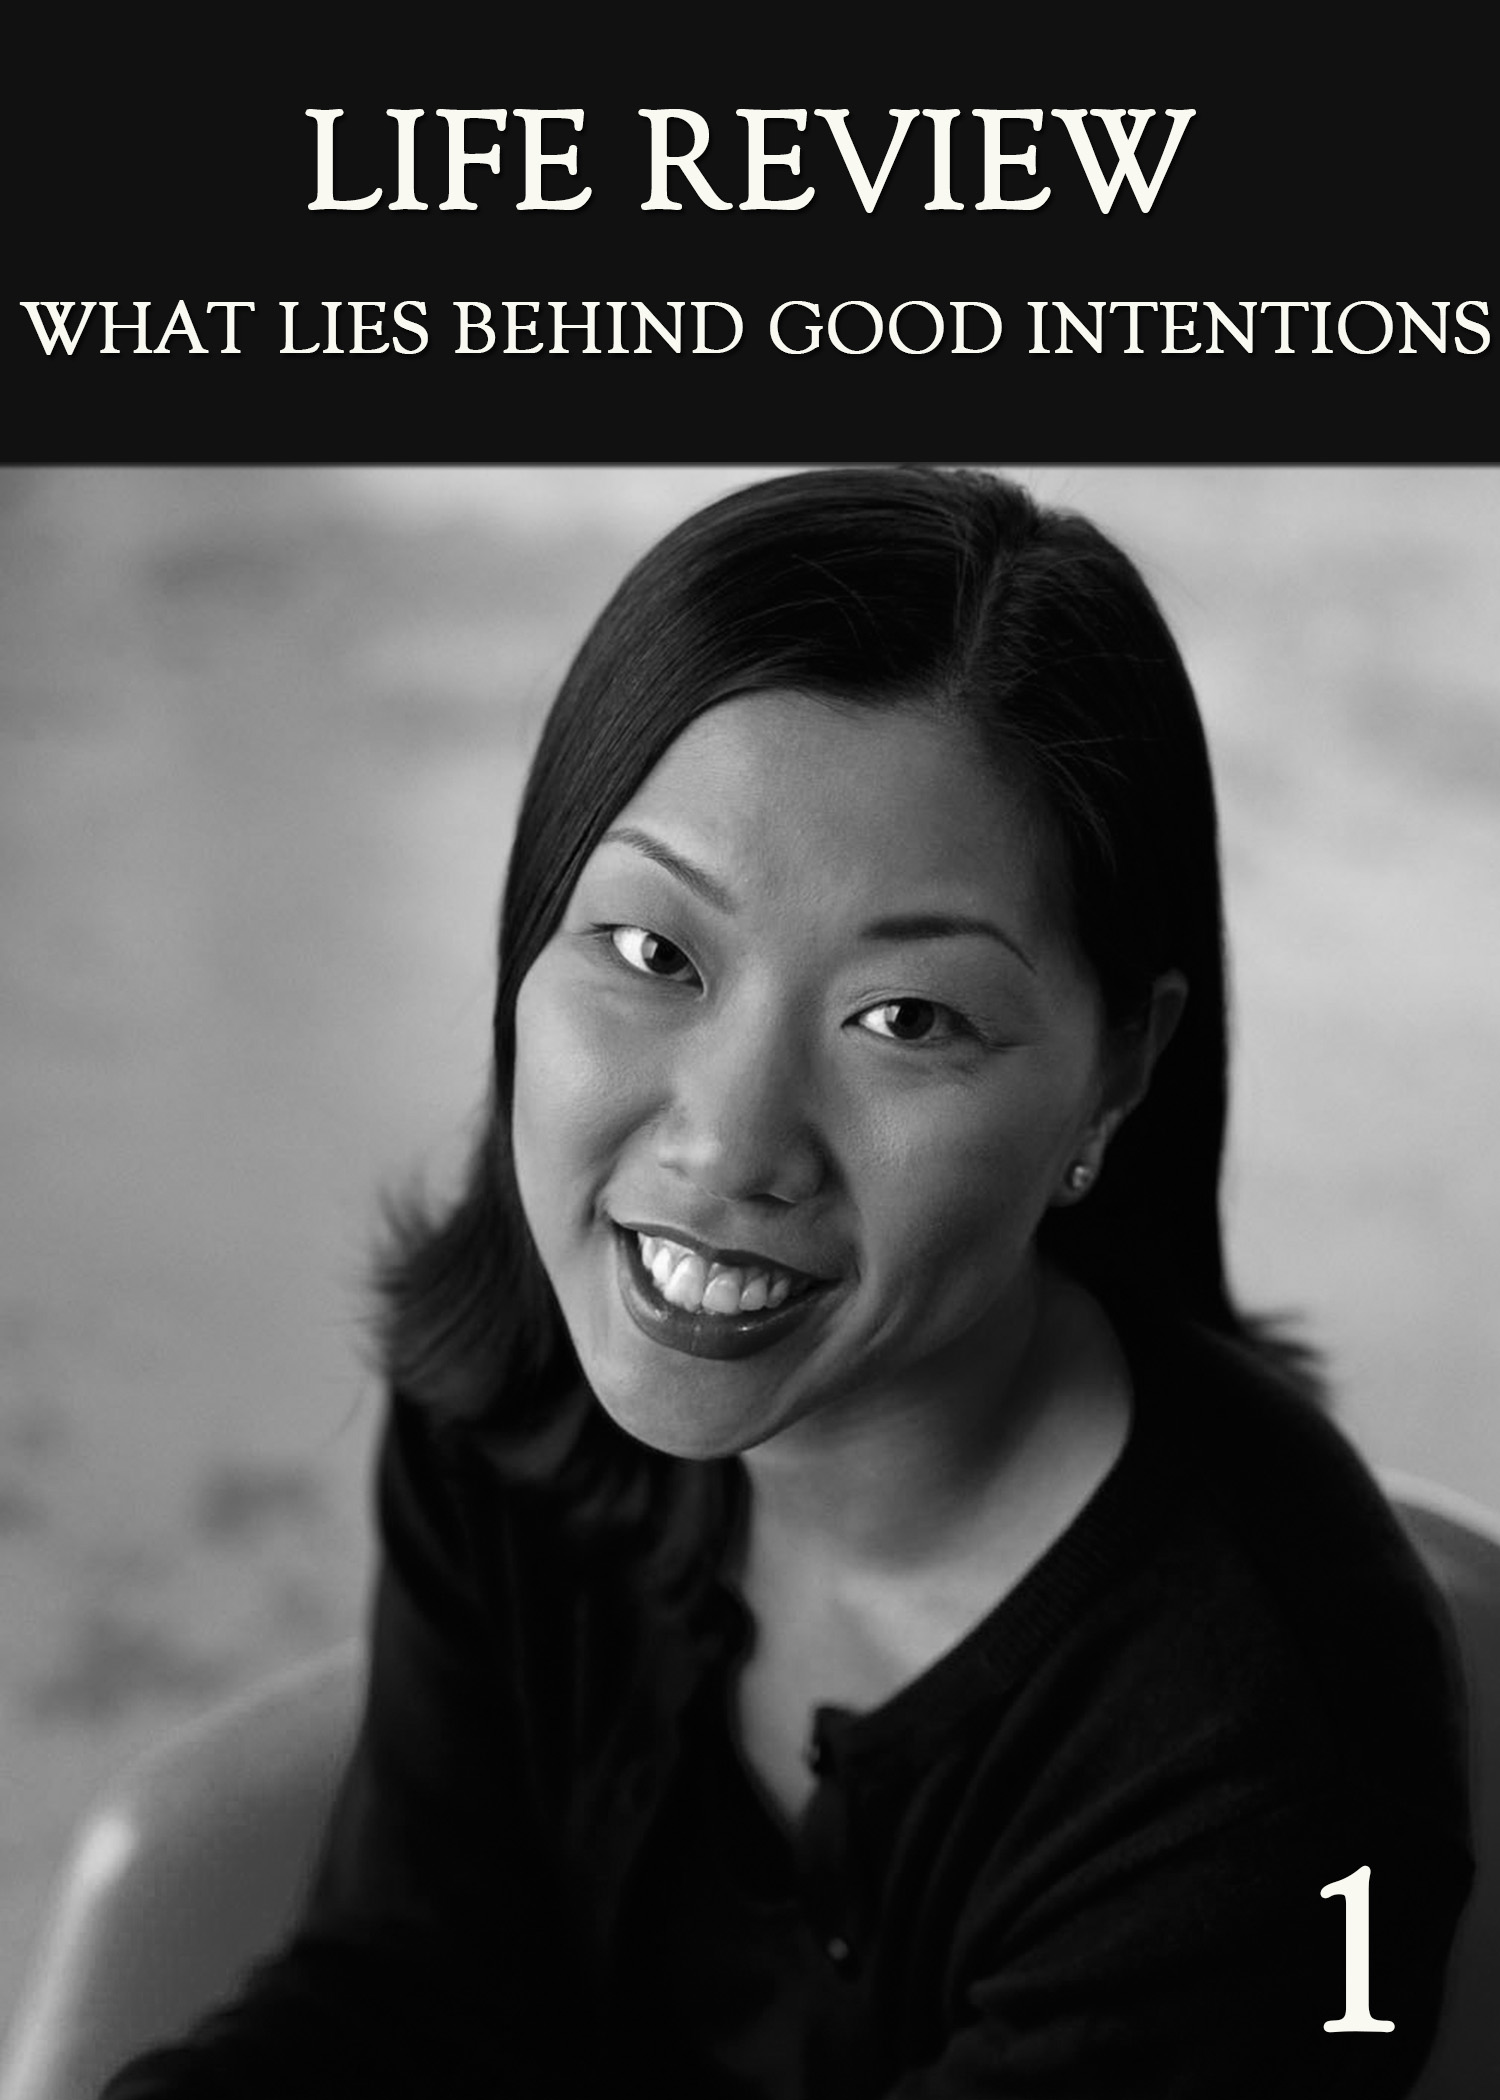 What Lies Behind Good Intentions (Part 1) - Life Review « EQAFE